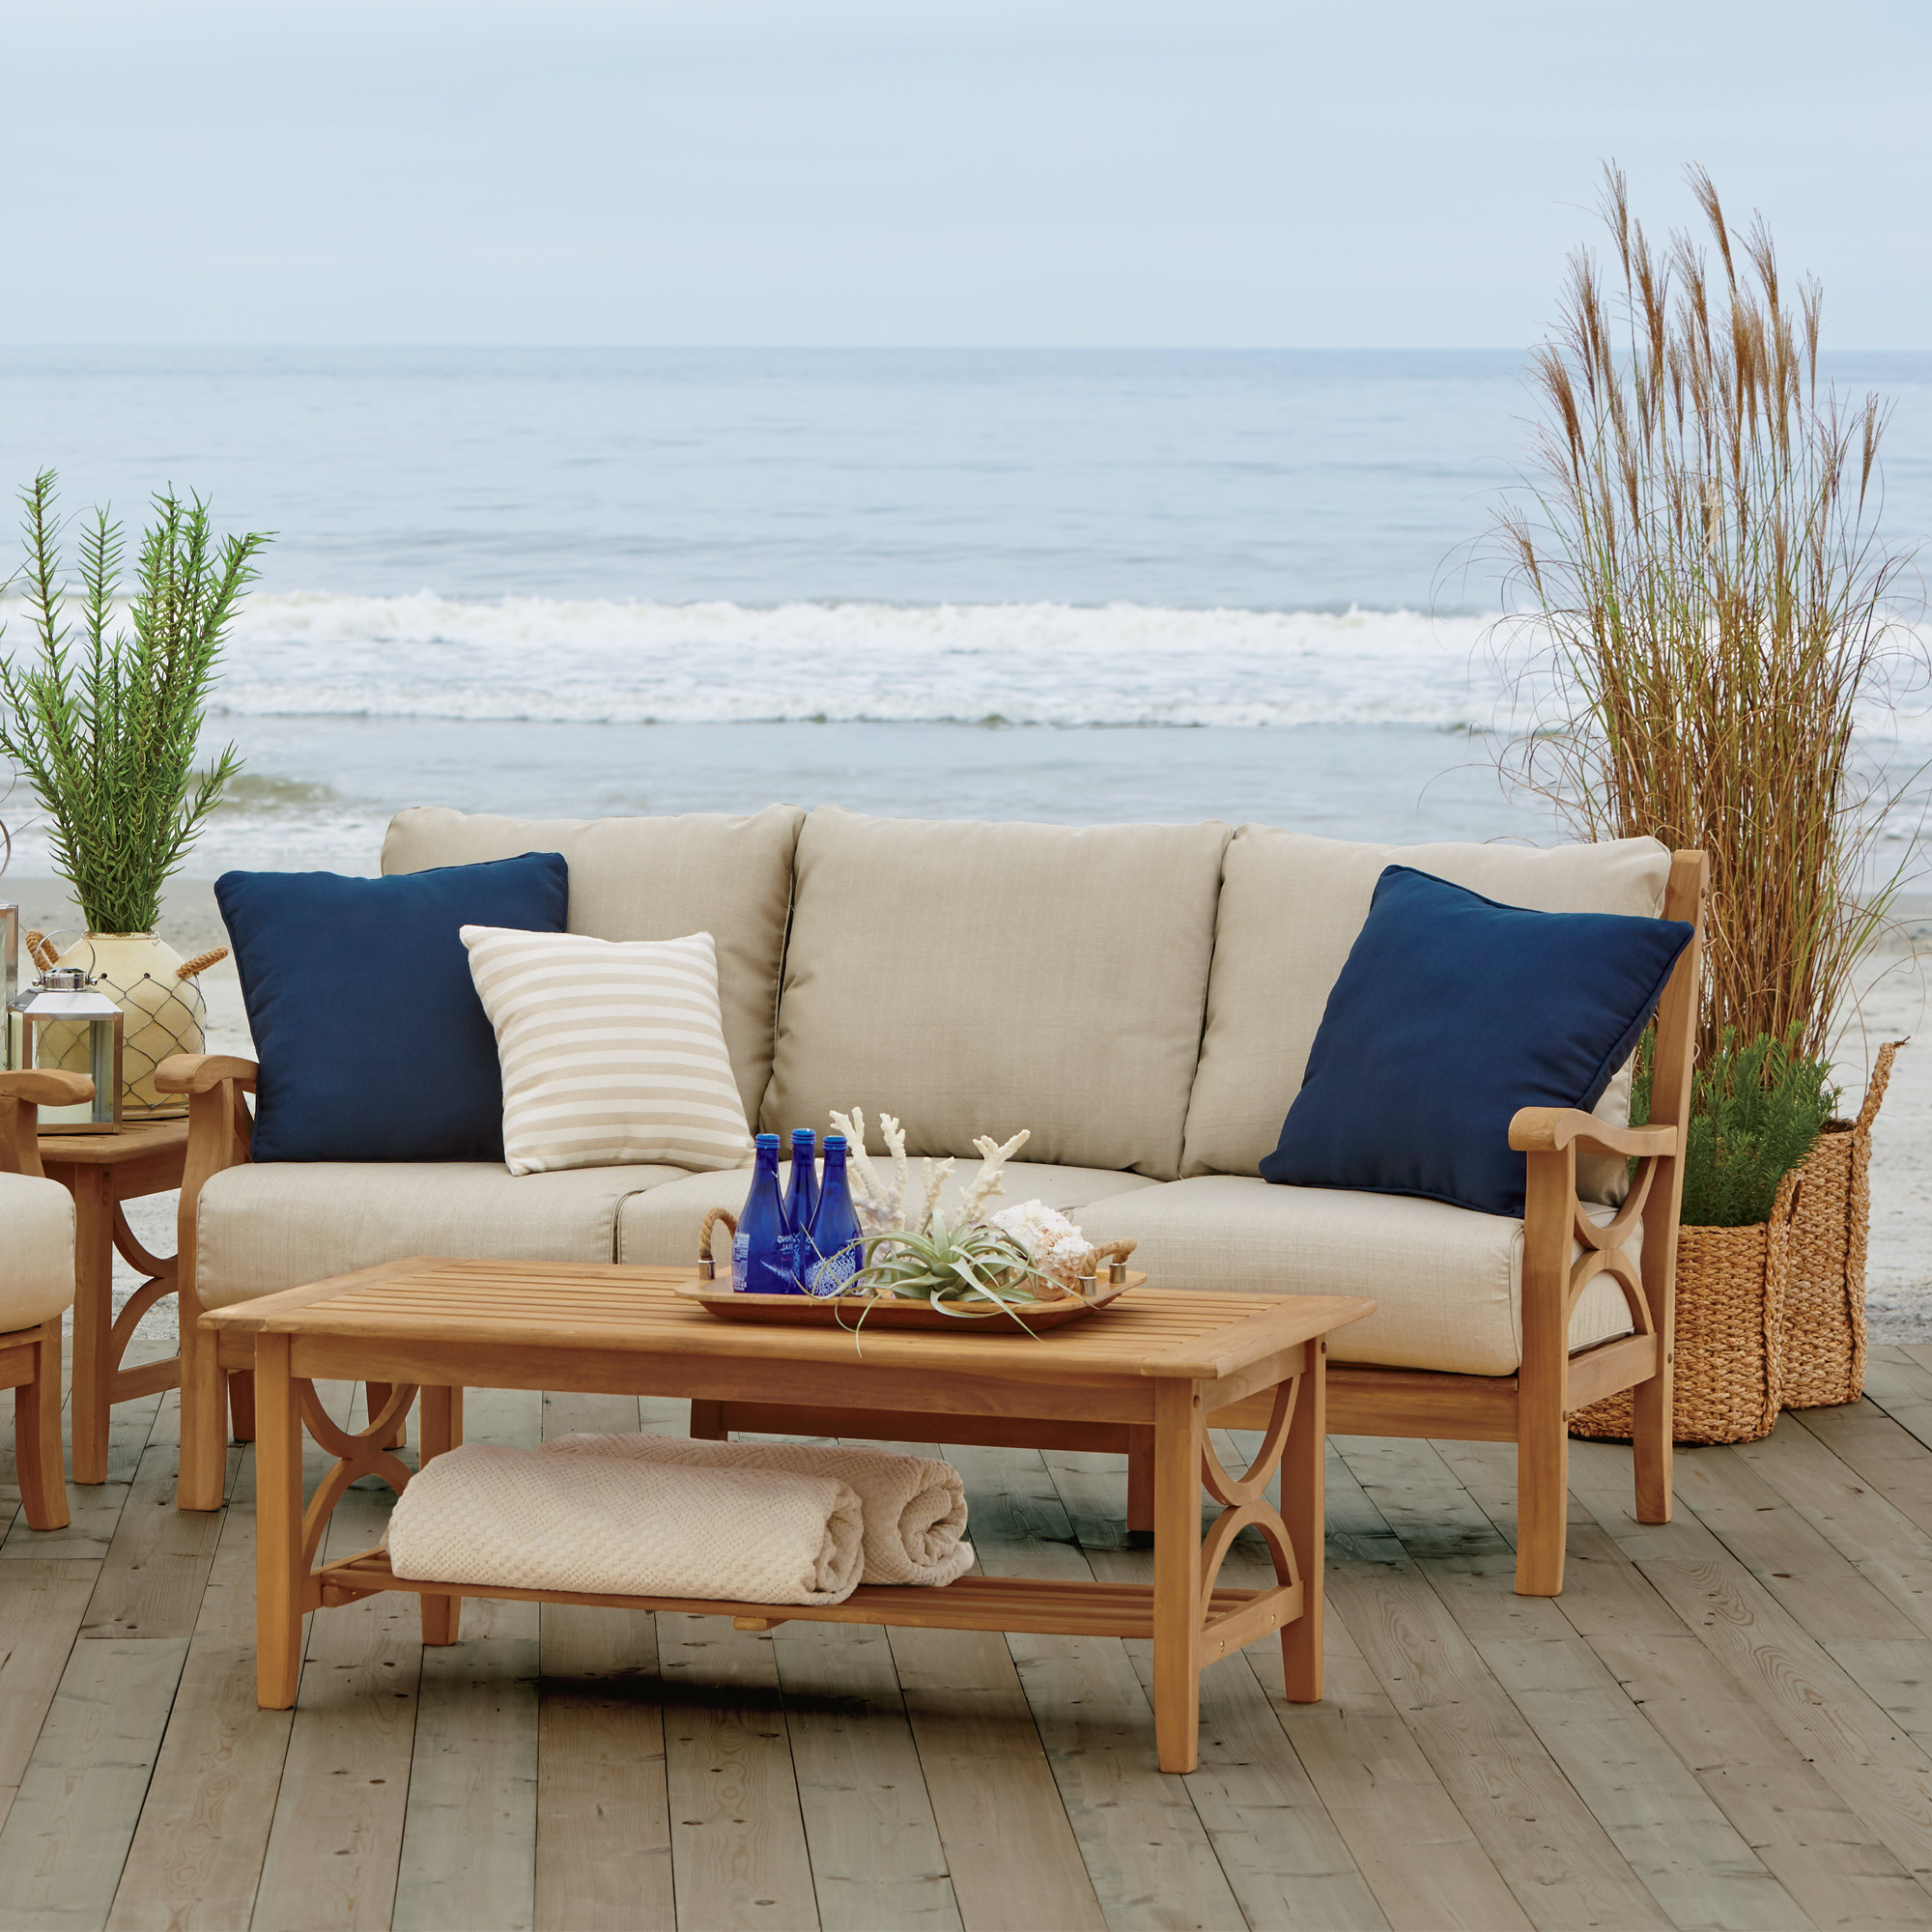 Antonia Teak Patio Sectionals With Cushions With Regard To Favorite Brunswick Teak Patio Sofa With Cushions (Gallery 8 of 25)